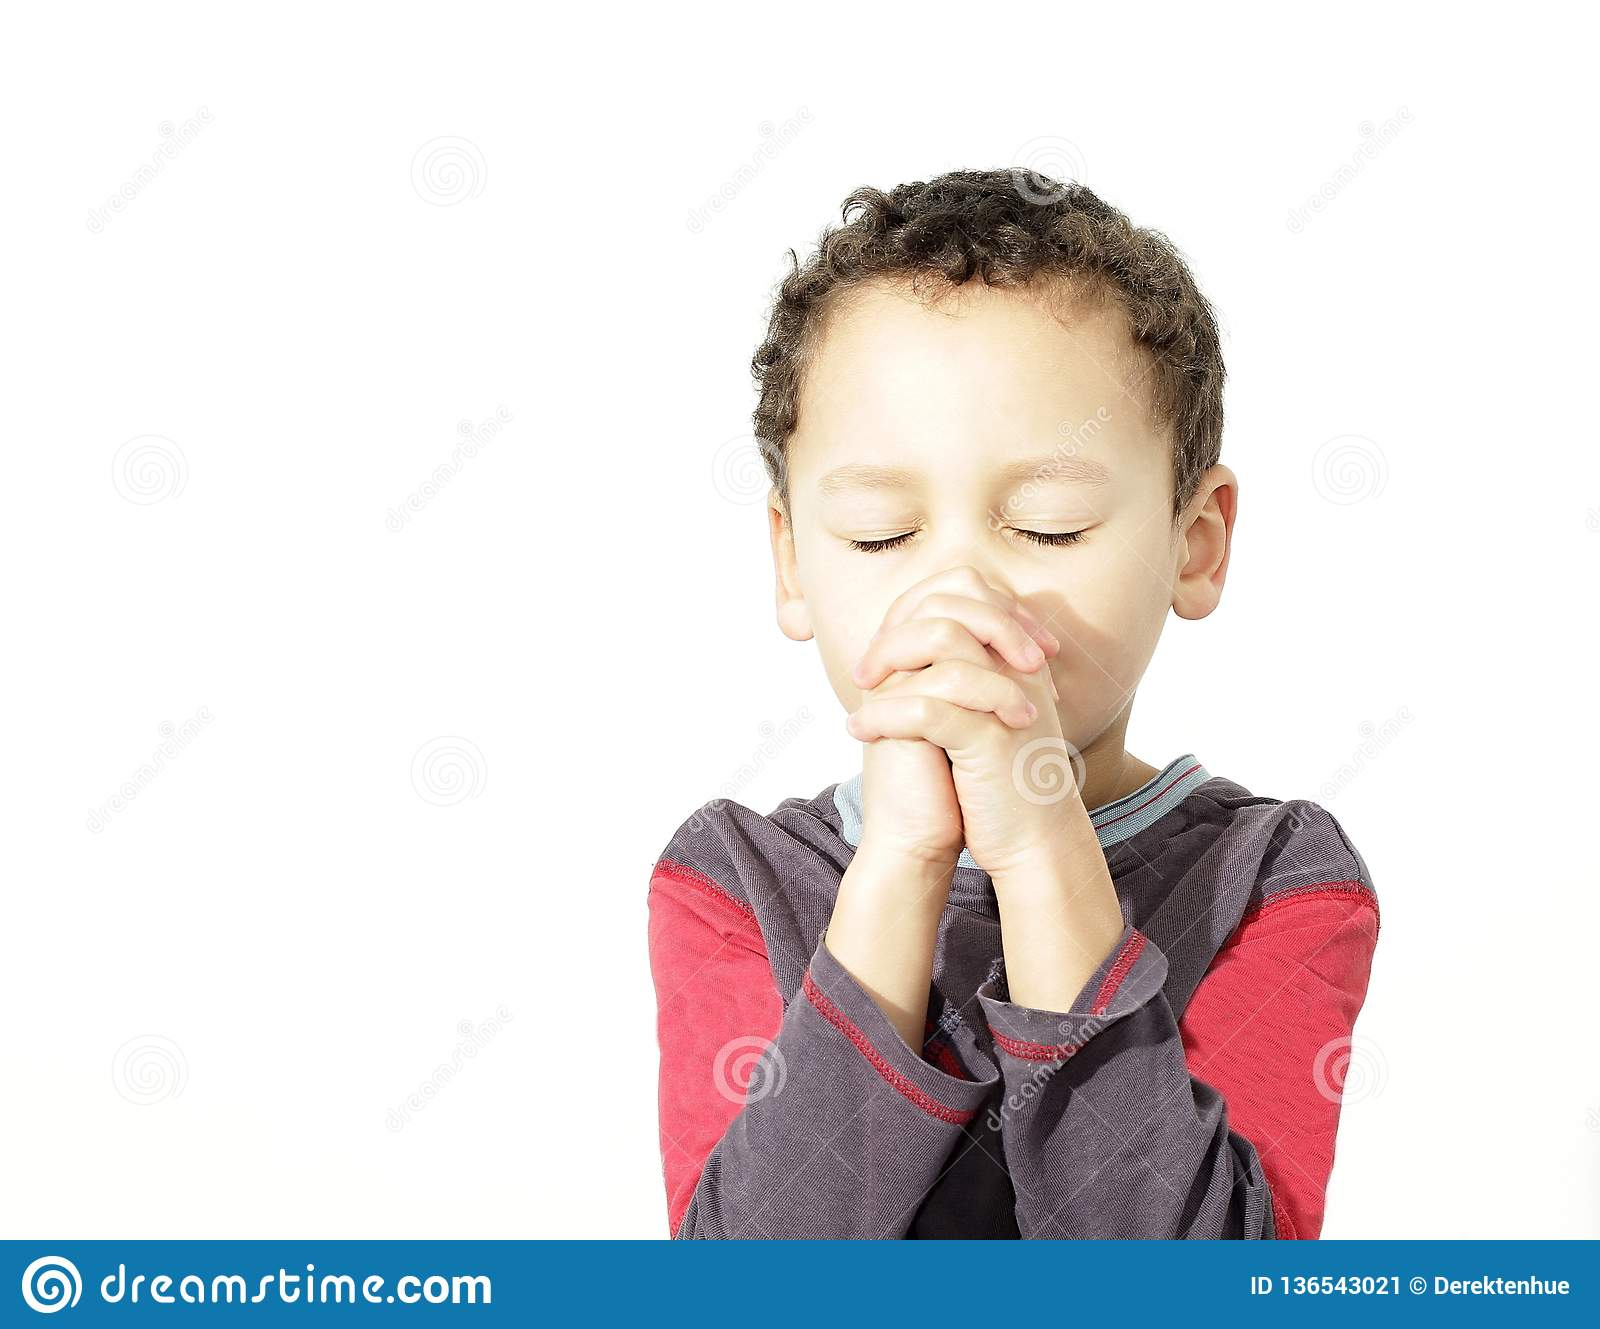 Little boy with hands together praying